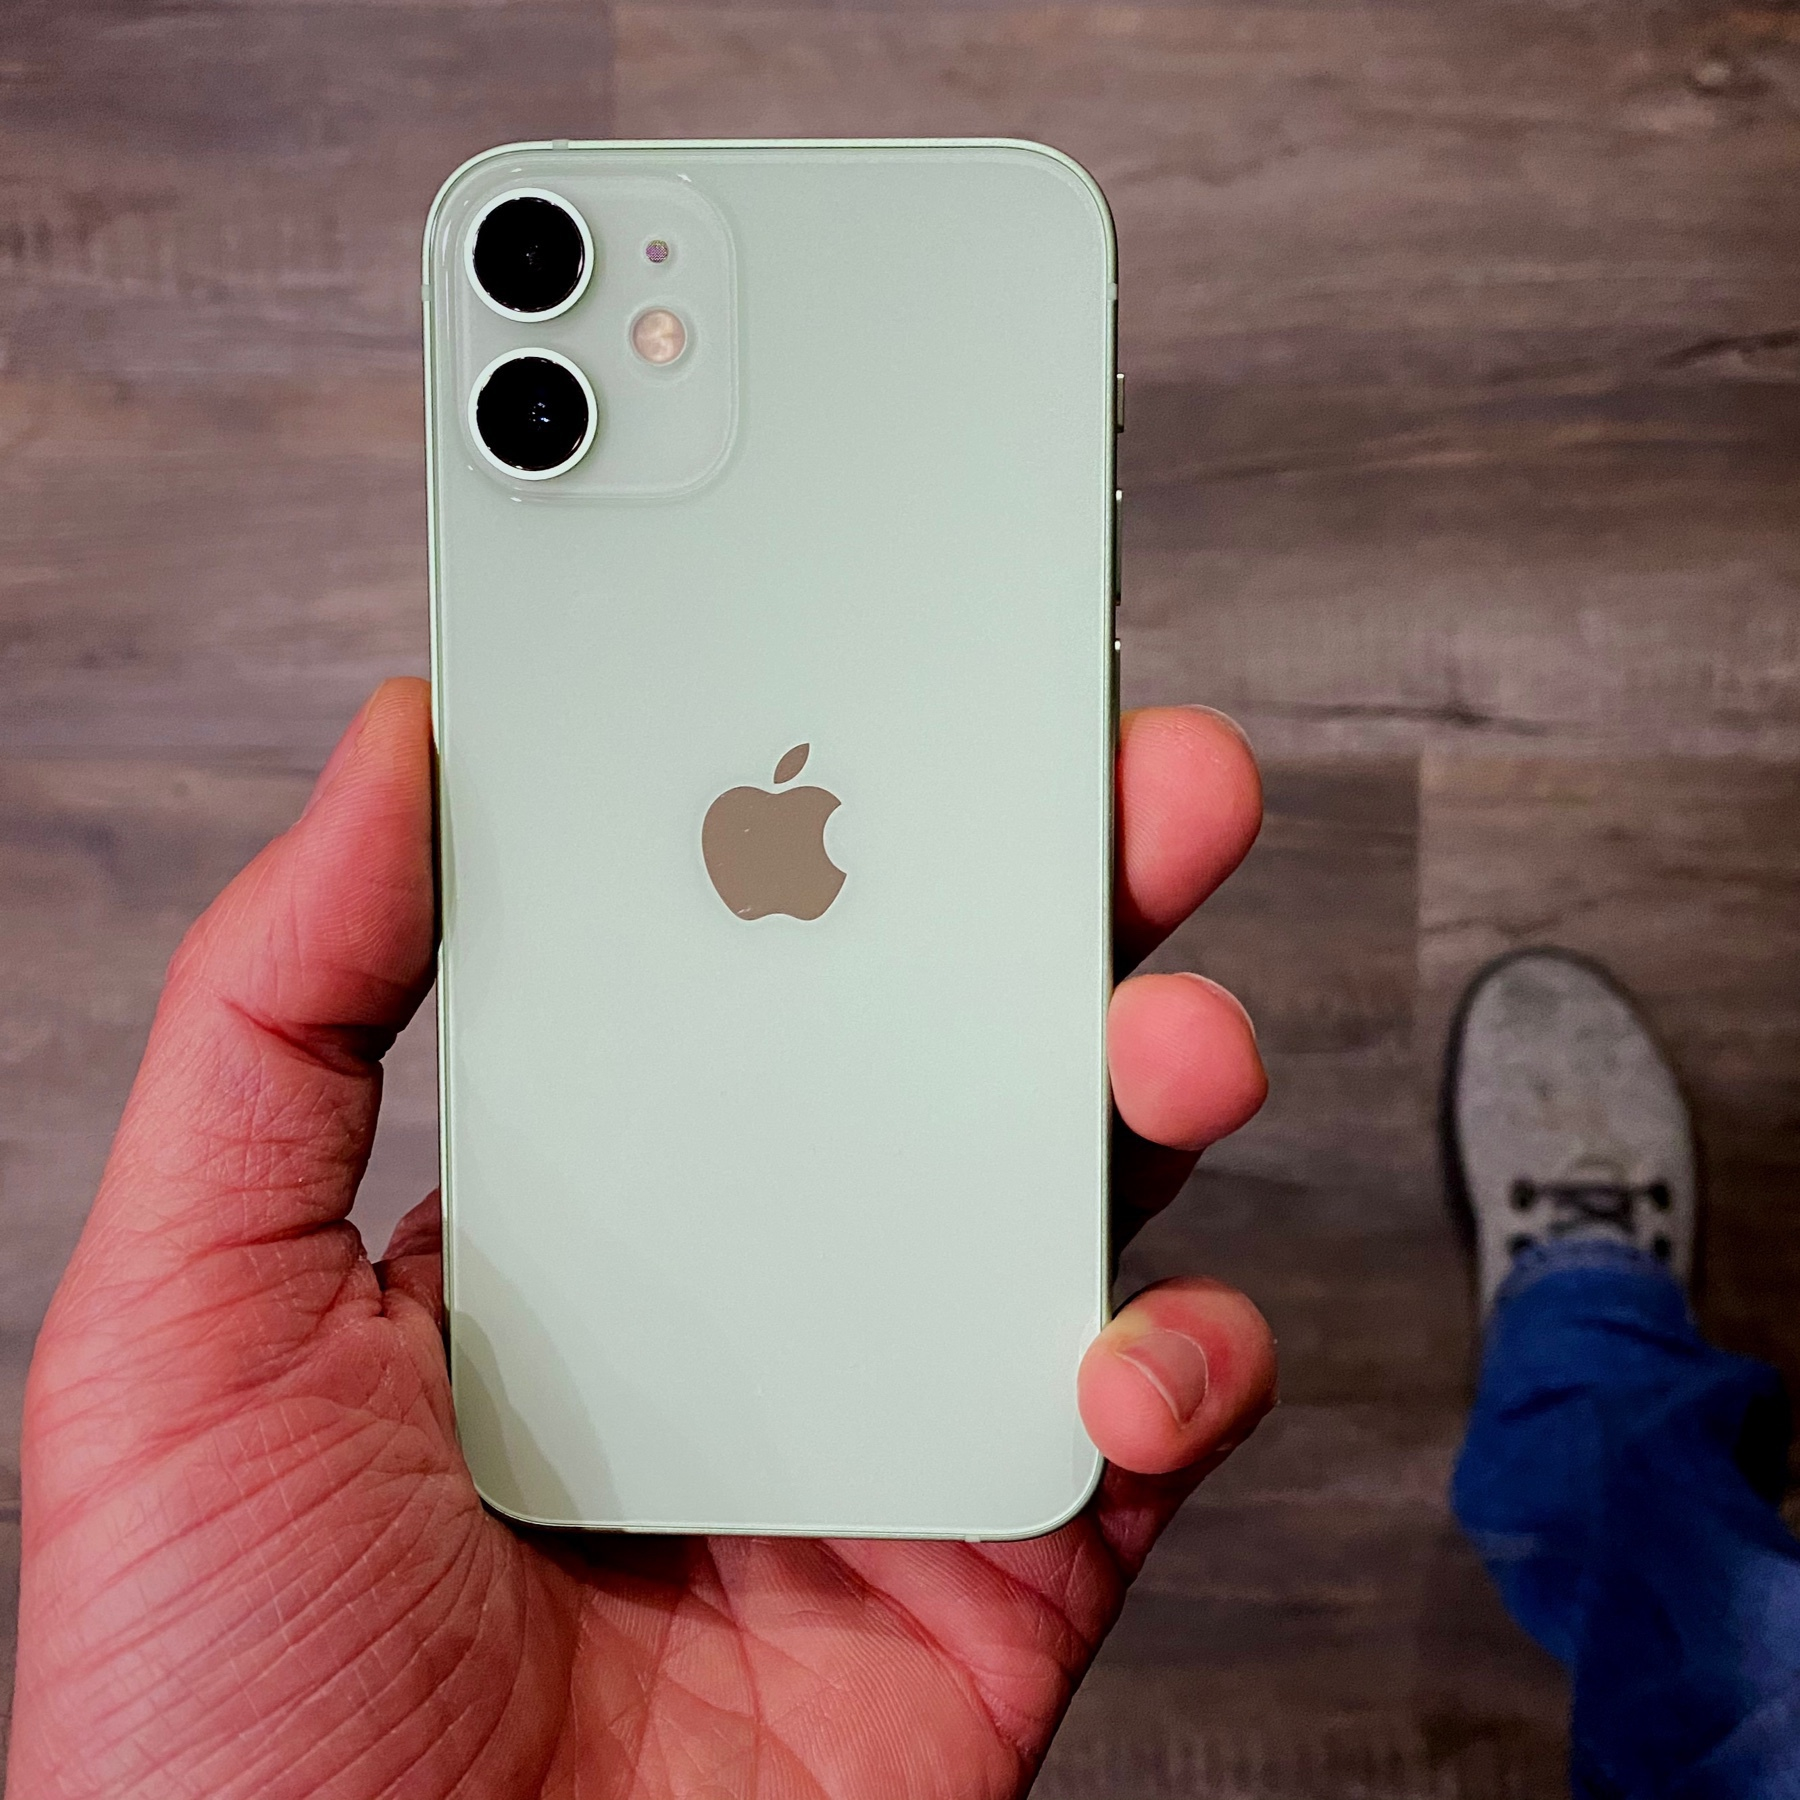 green iPhone 12 mini